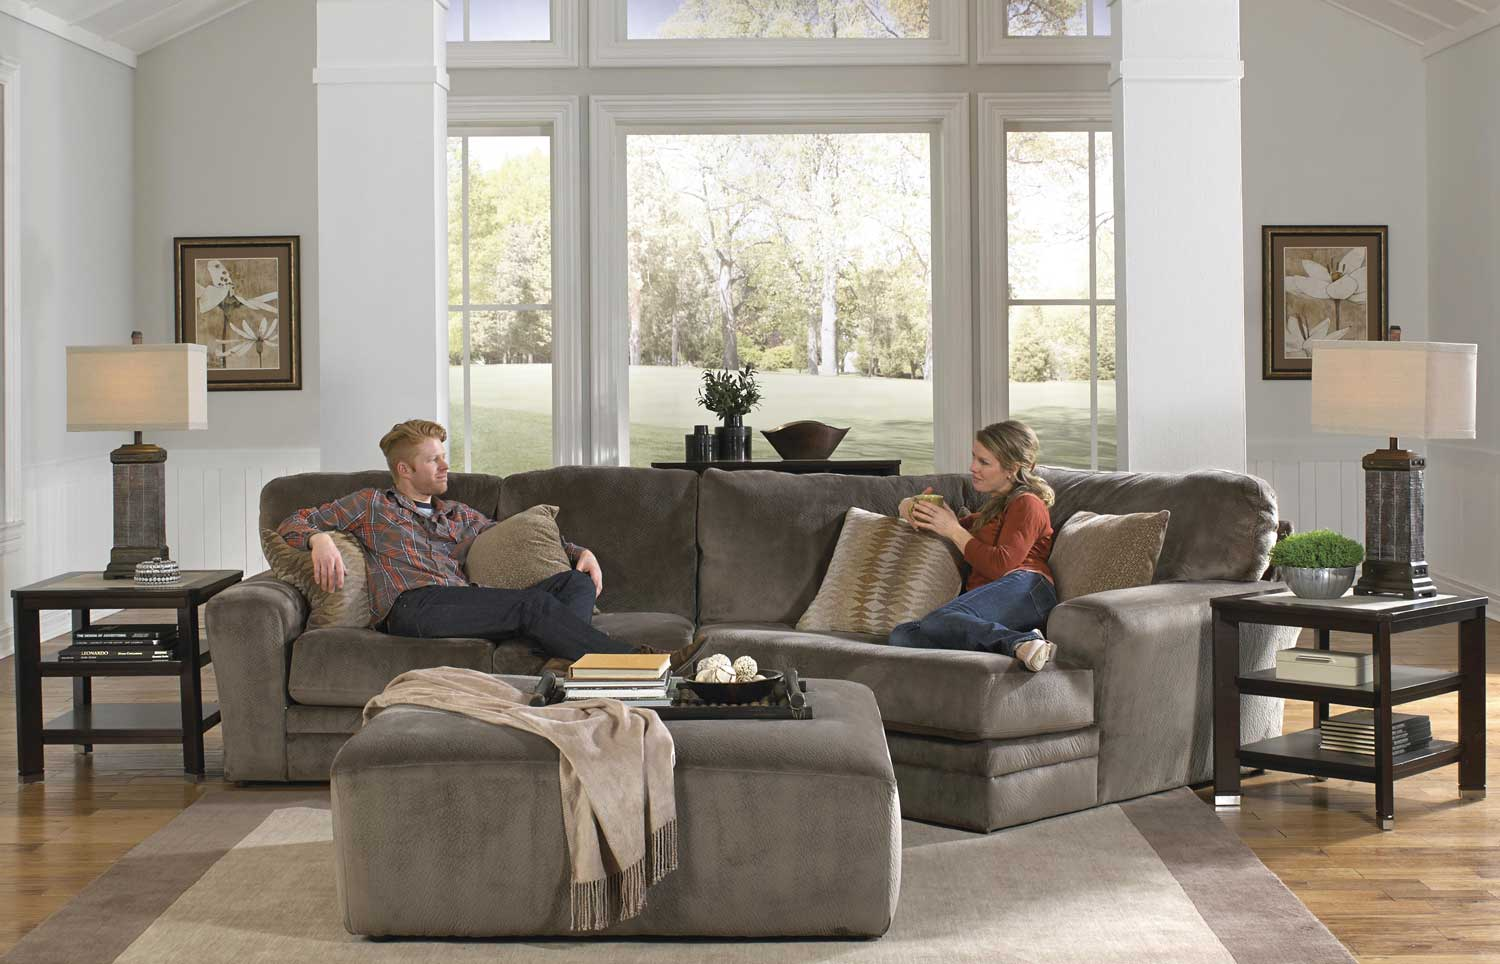 Jackson Everest Sectional Sofa Set B - Seal